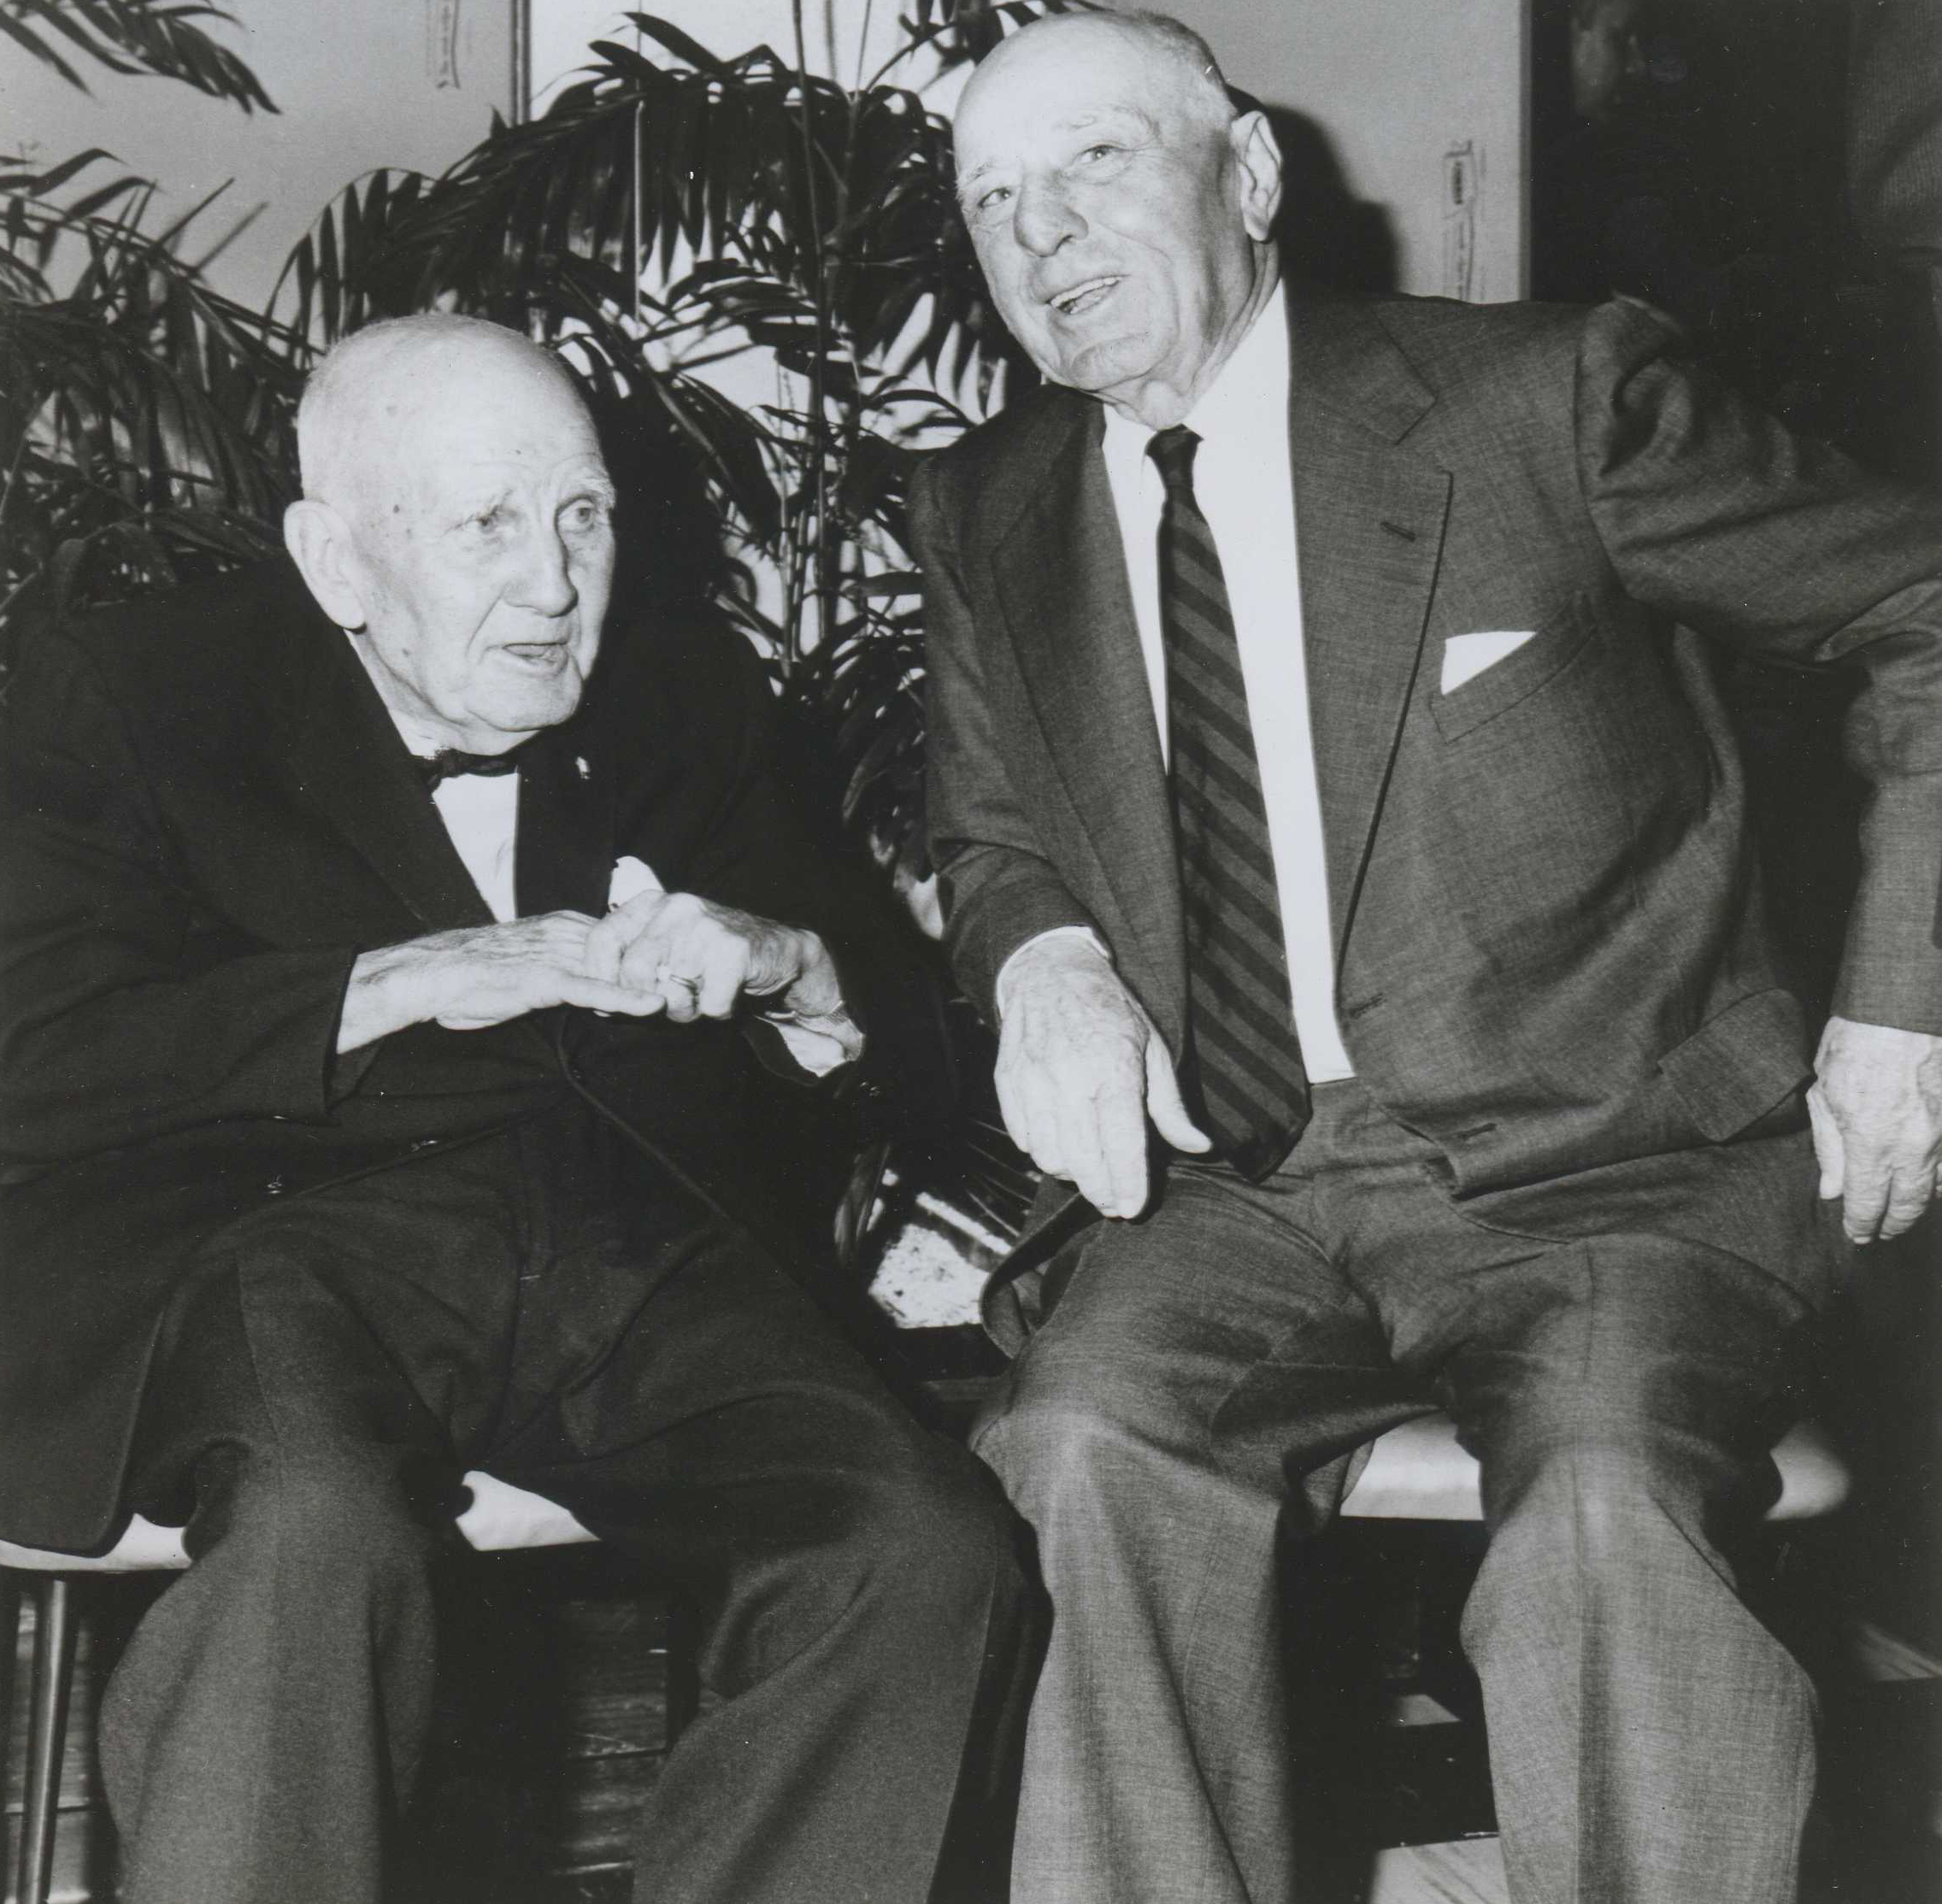 """James """"Sunny Jim"""" Fitzsimmons, left, and Max Hirsch at Saratoga, 1964 (Museum Collection)"""